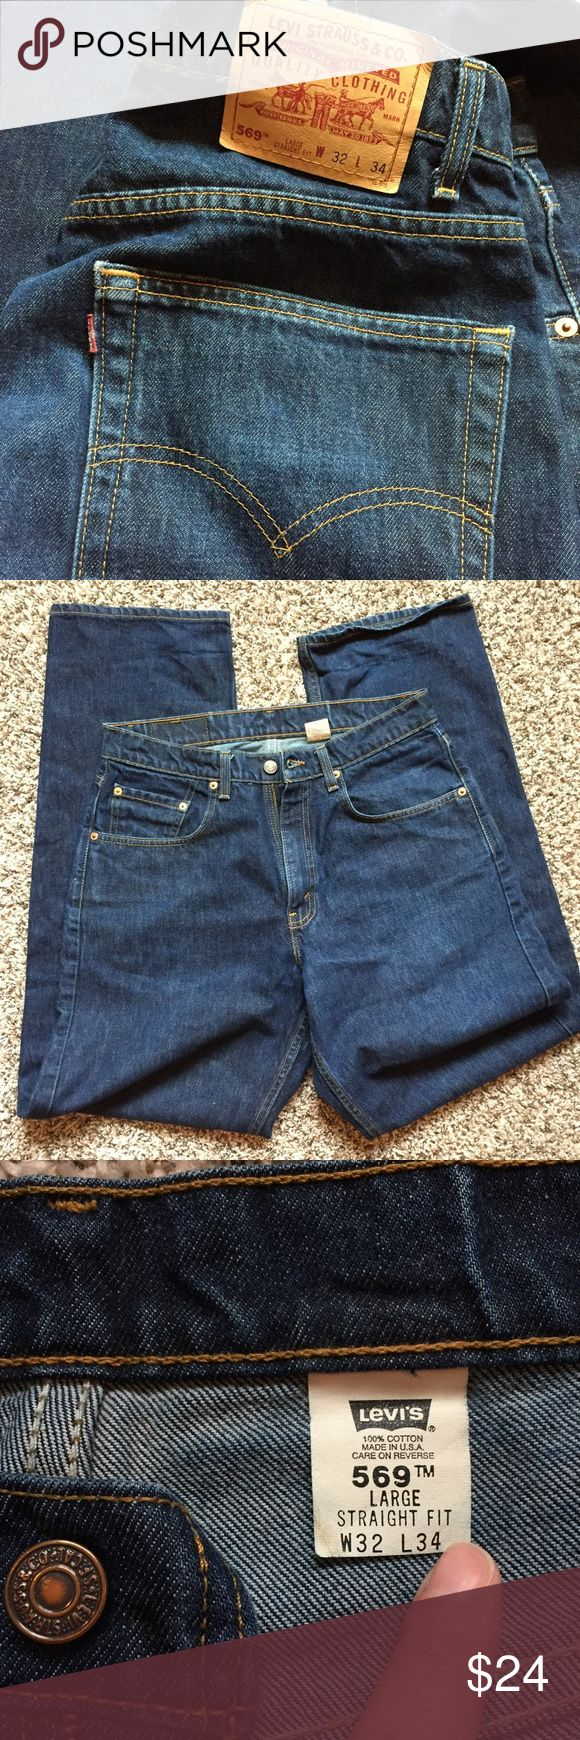 Levi's 569 Made in USA! Classic Men's Levi's 569 jeans. Large, Straight fit. No stains, holes, or fraying. Made in USA!! Size W32 L34 Levi's Jeans Straight